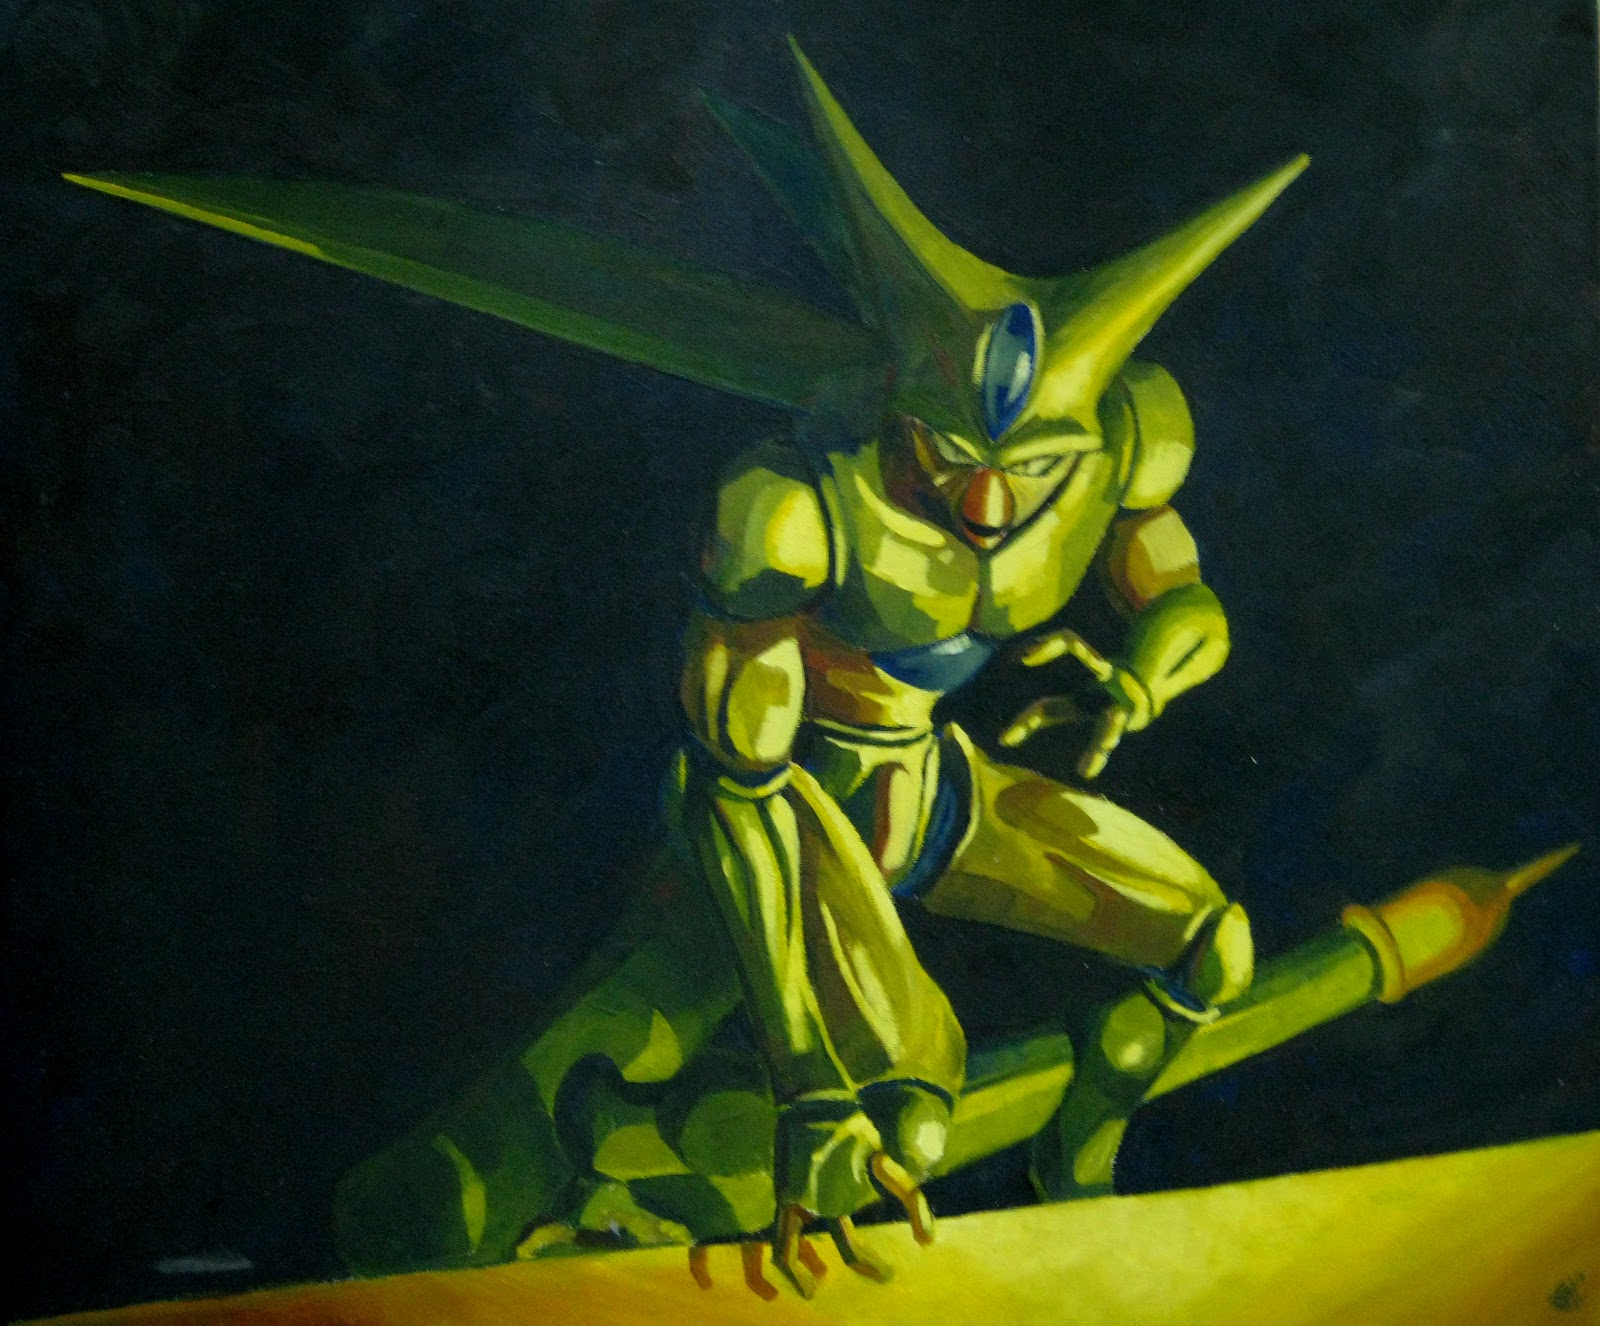 dragon ball z wallpapers imperfect cell